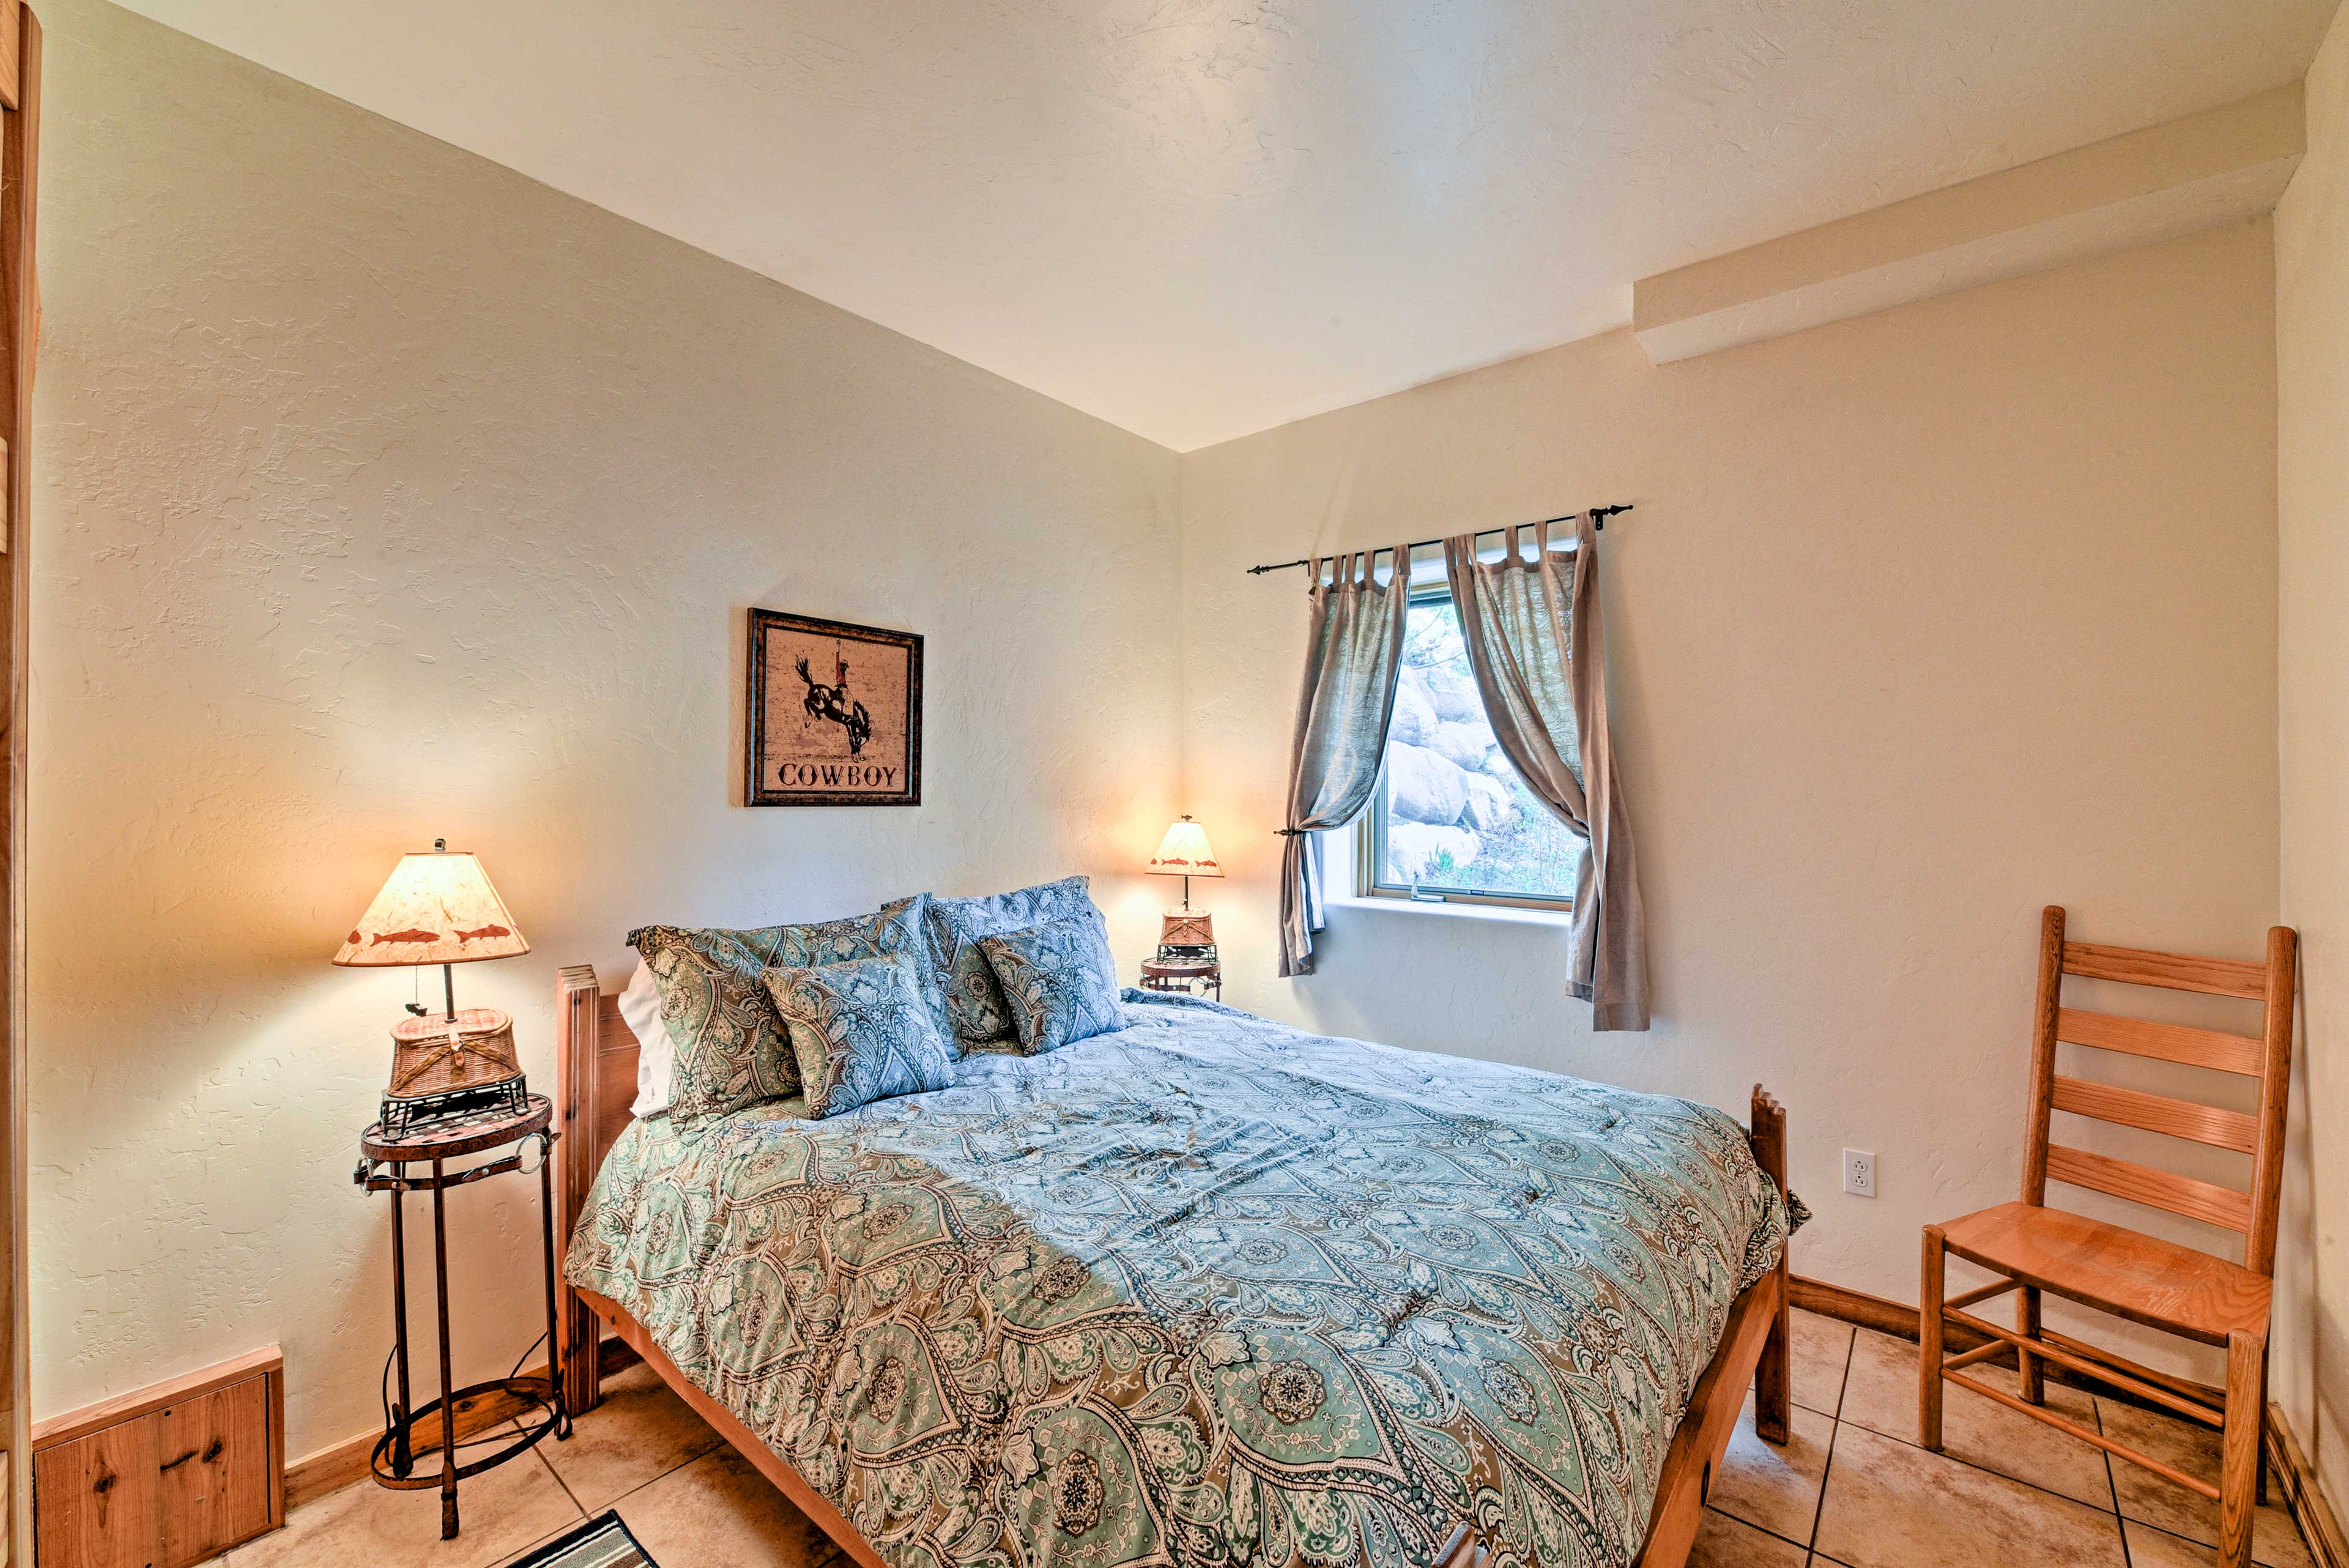 A second bedroom on the main floor features a queen bed.